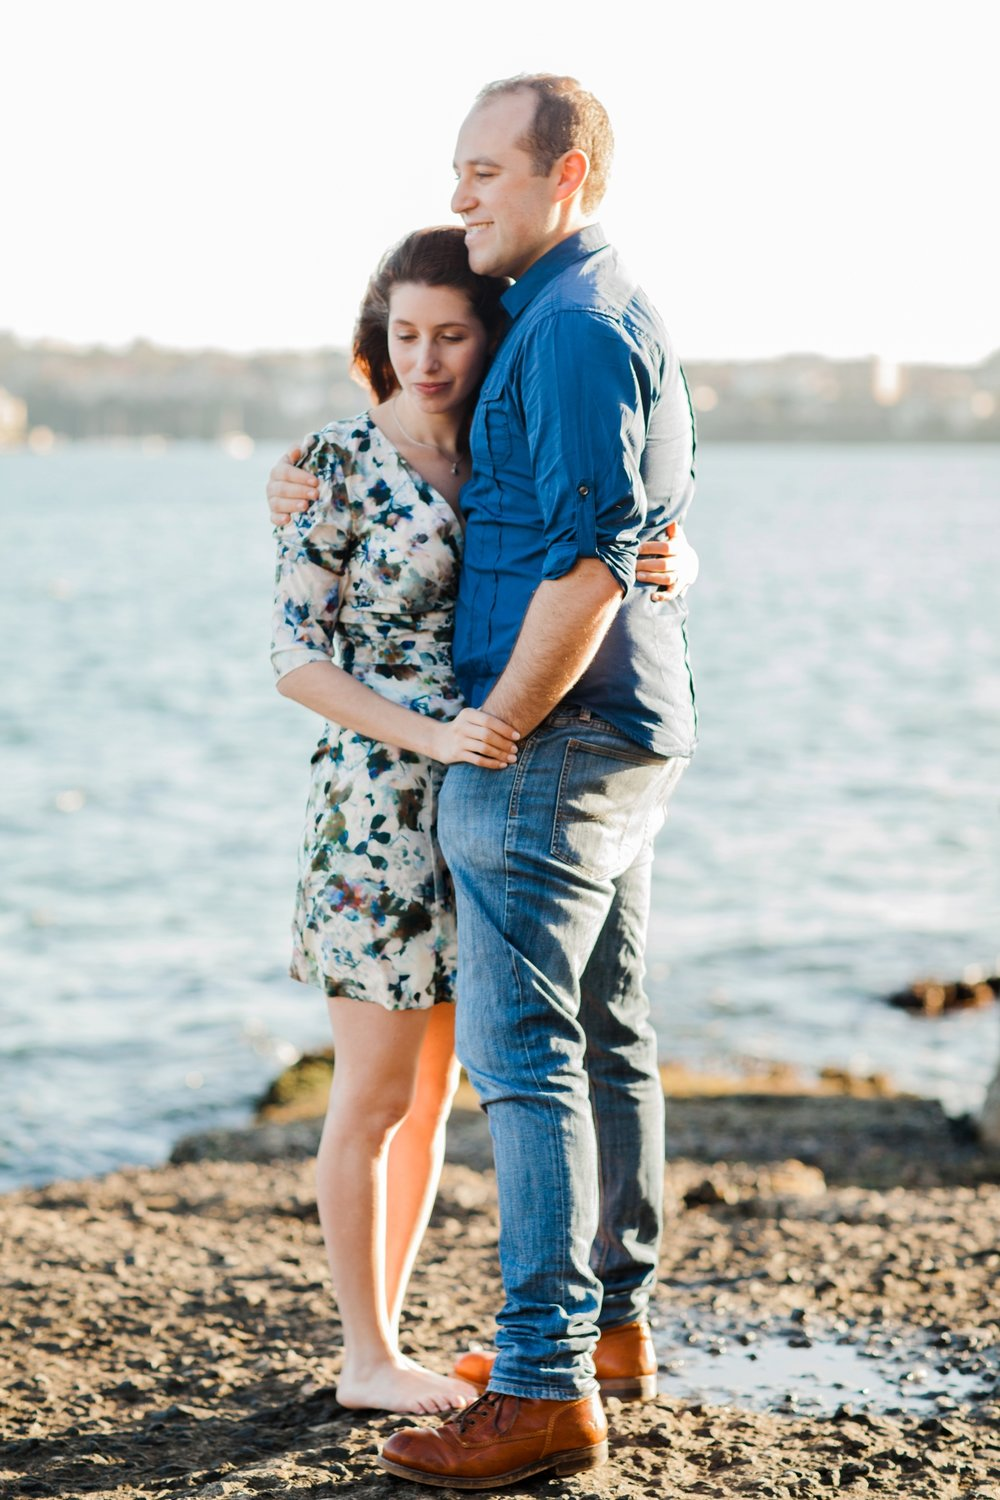 Couples session Sydney by Mr Edwards_3551.jpg